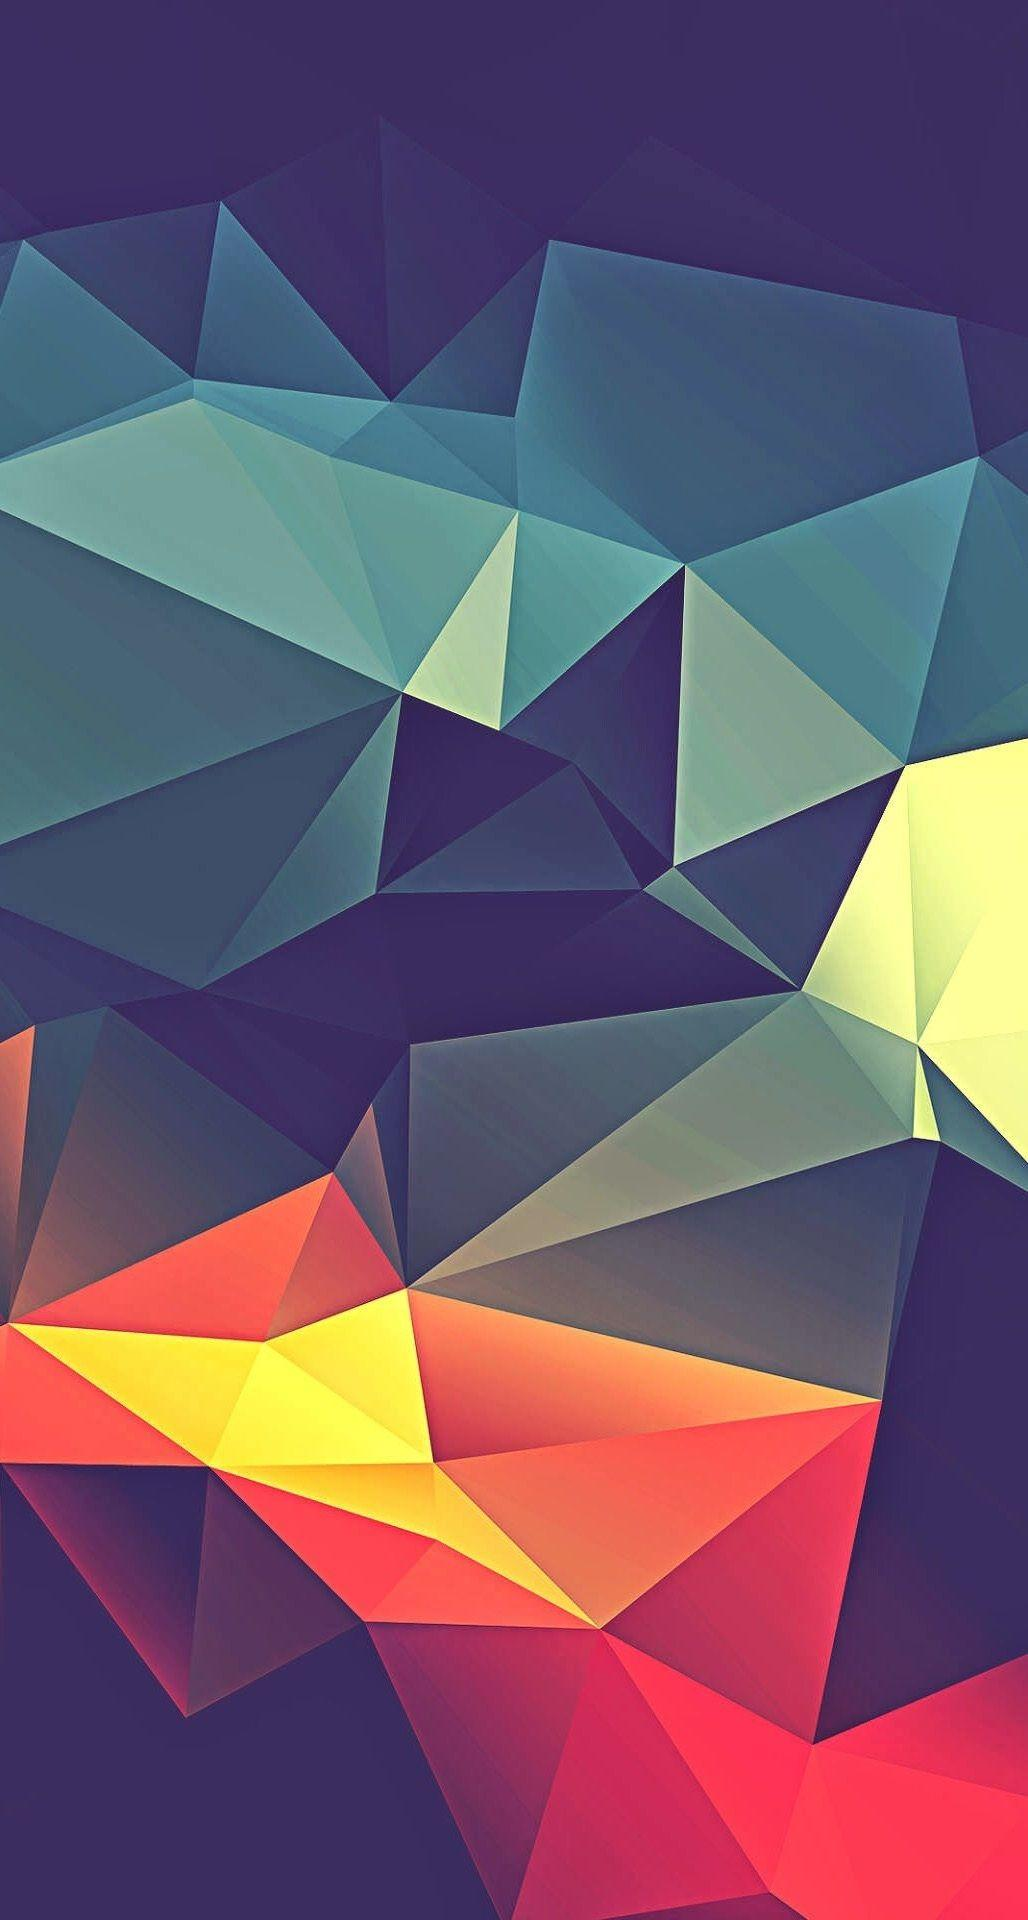 5 Days of Awesome Wallpapers: Geometric Wallpapers - TechSpot